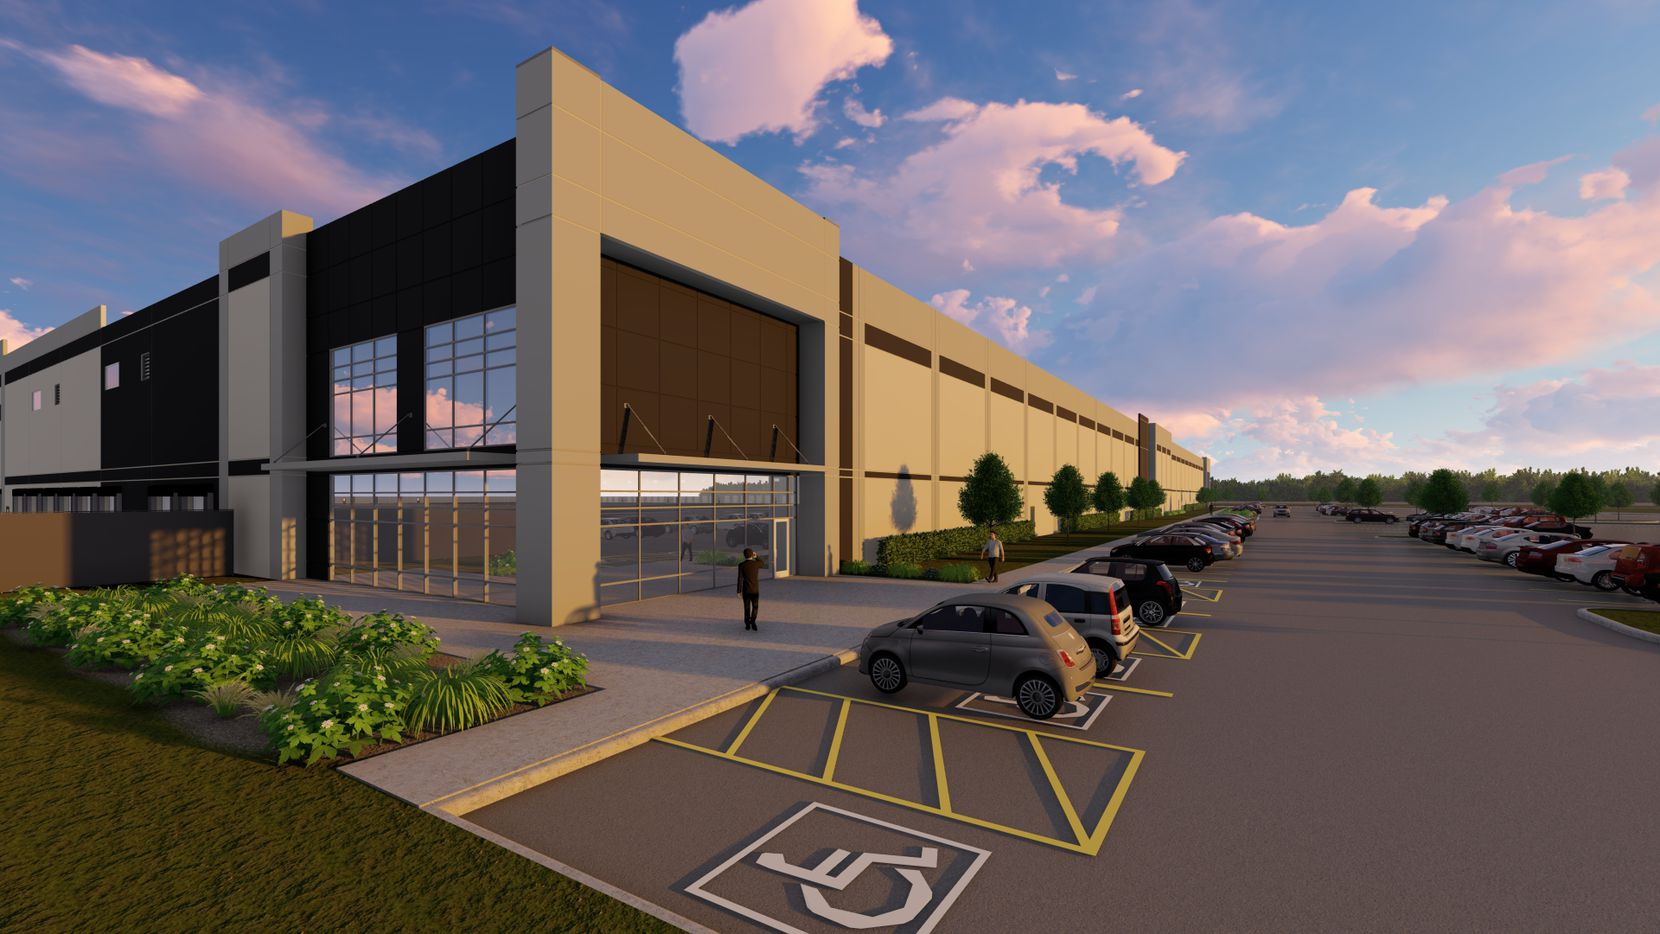 The new warehouse will support the retailer's expansion in North Texas.